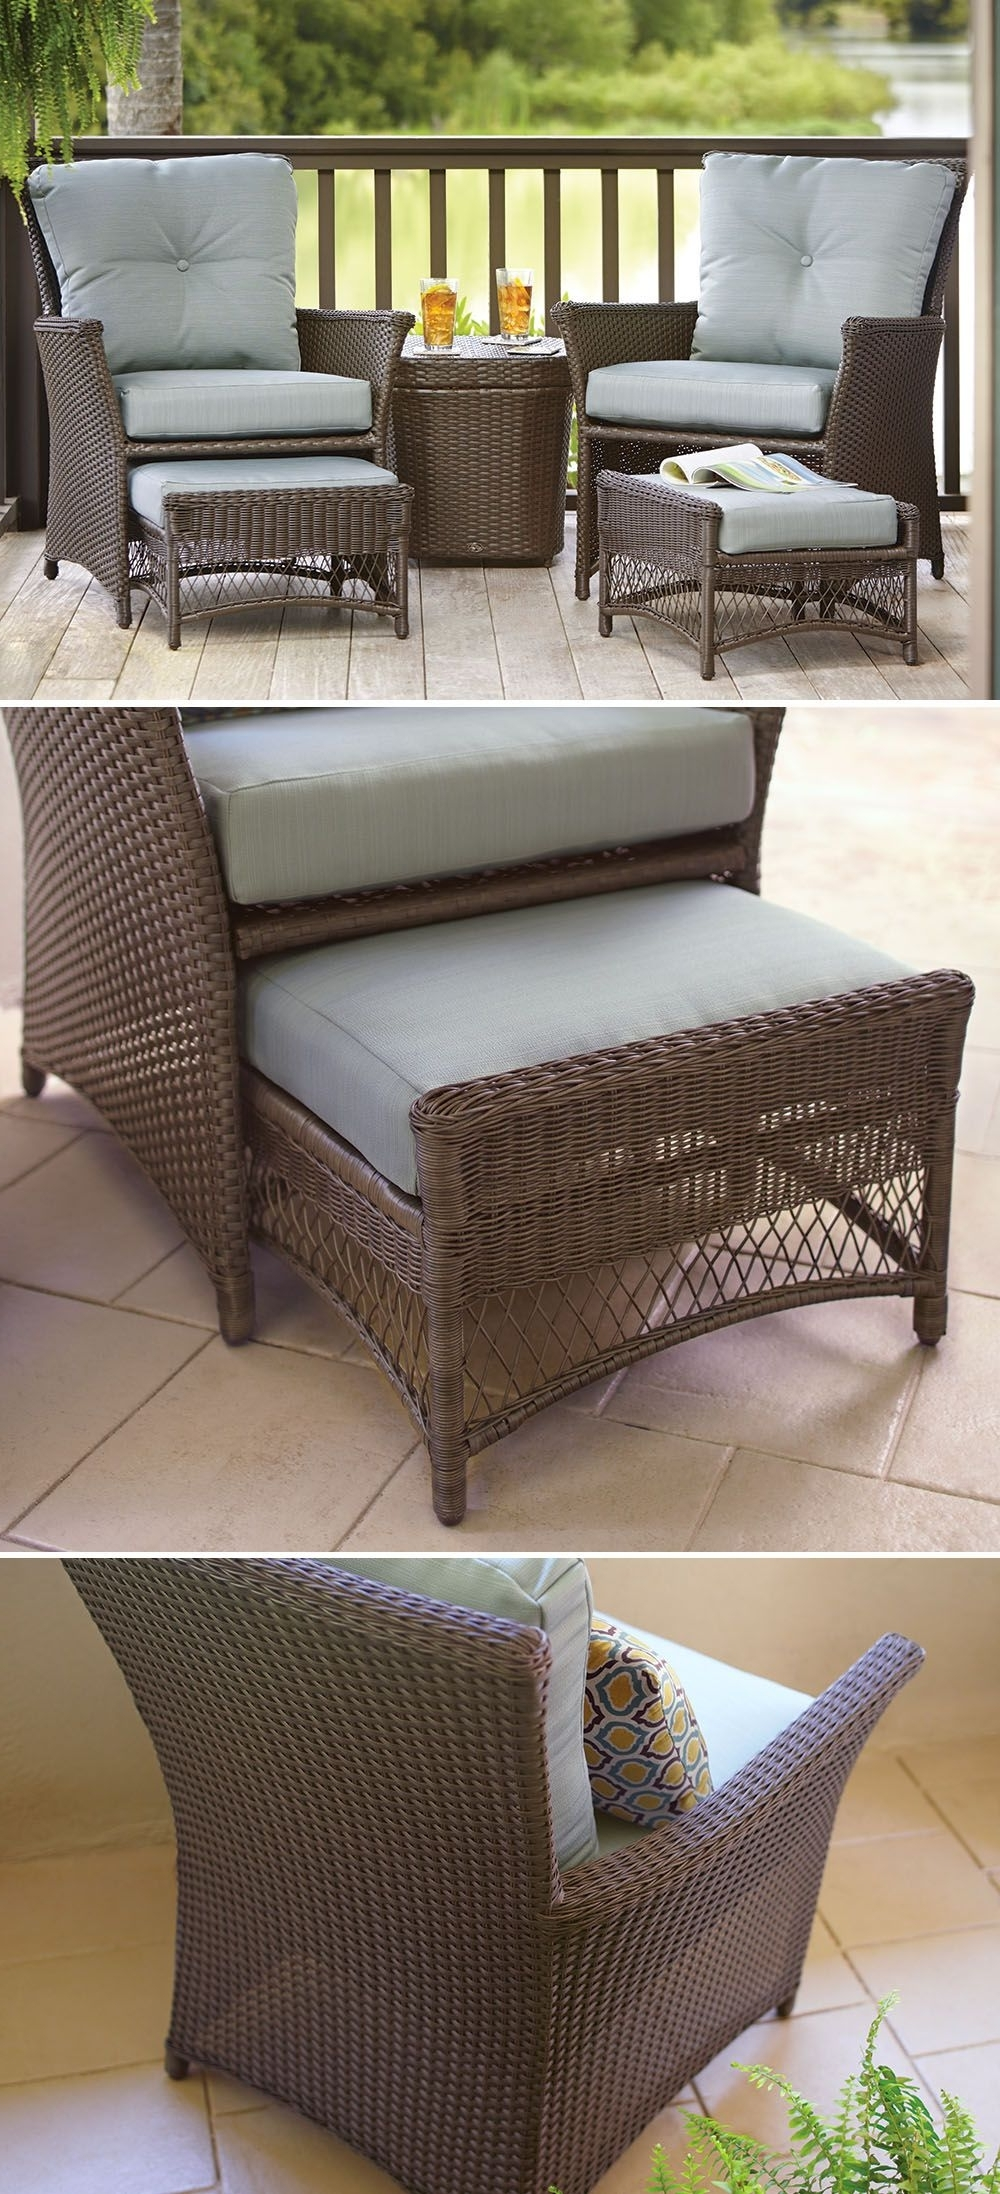 This Affordable Patio Set Is Just The Right Size For Your Small With Regard To Latest Patio Umbrellas For Small Spaces (Gallery 18 of 20)